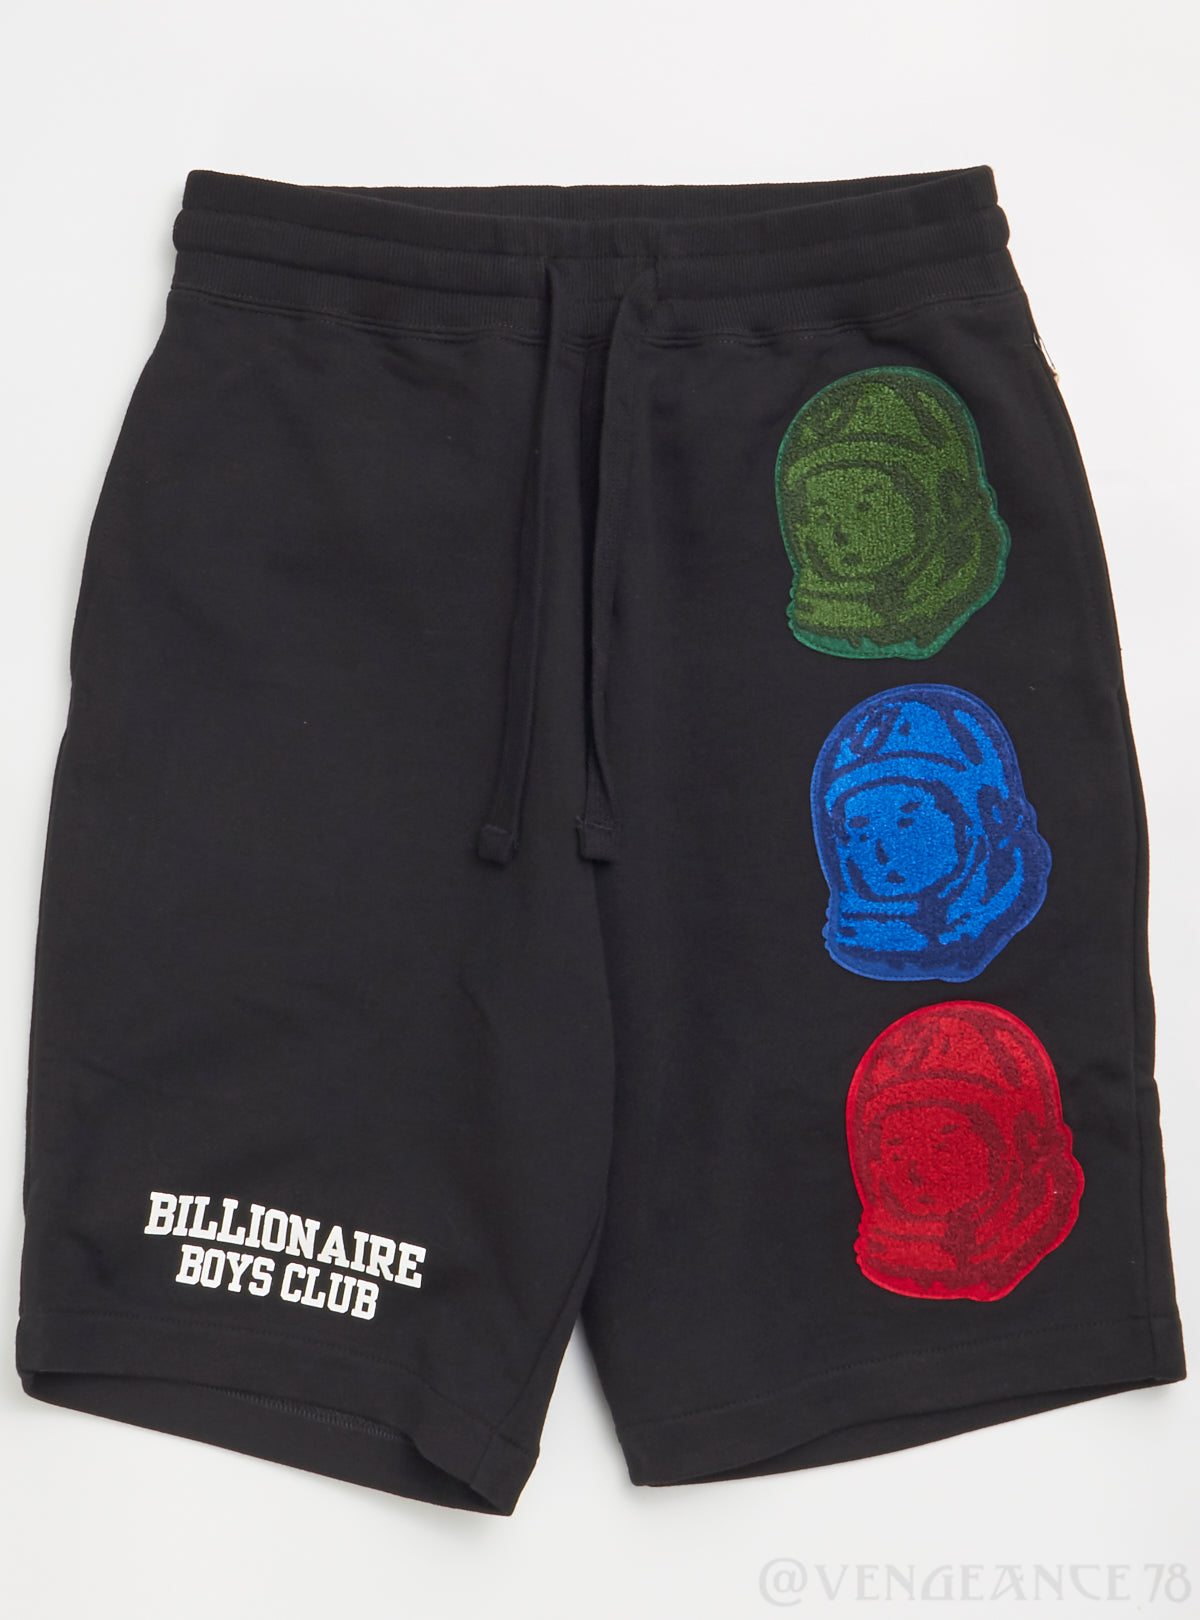 Billionaire Boys Club Shorts - Instructor - Black - 801-6103